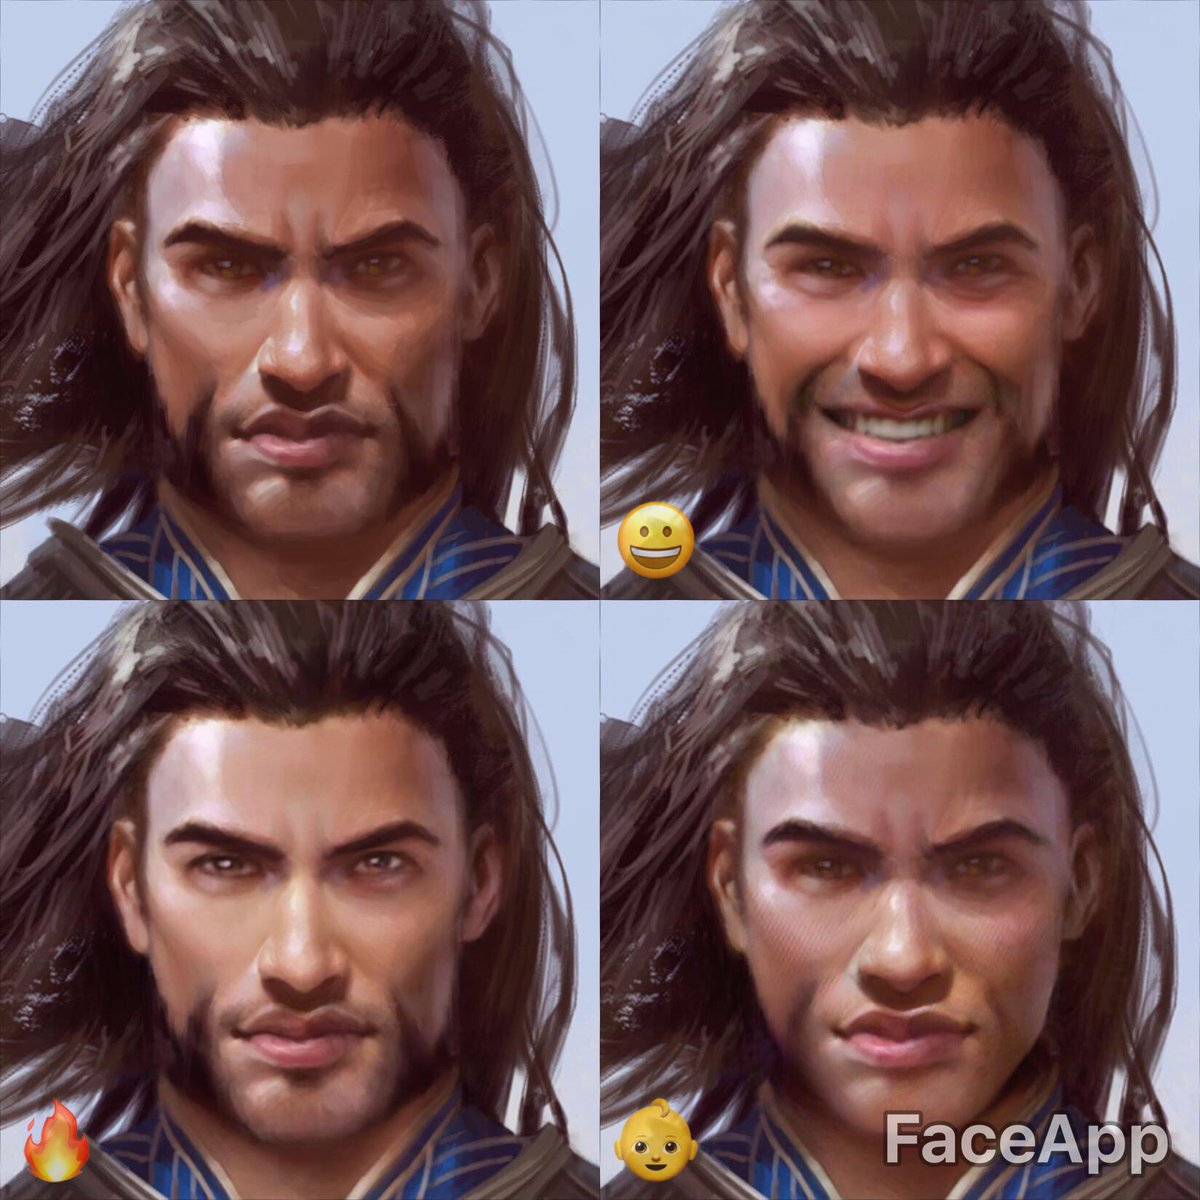 test Twitter Media - #faceapp on Gideon. The world isn't ready for hot Gideon. #mtg #MTGAKH https://t.co/YGwqk0Chip